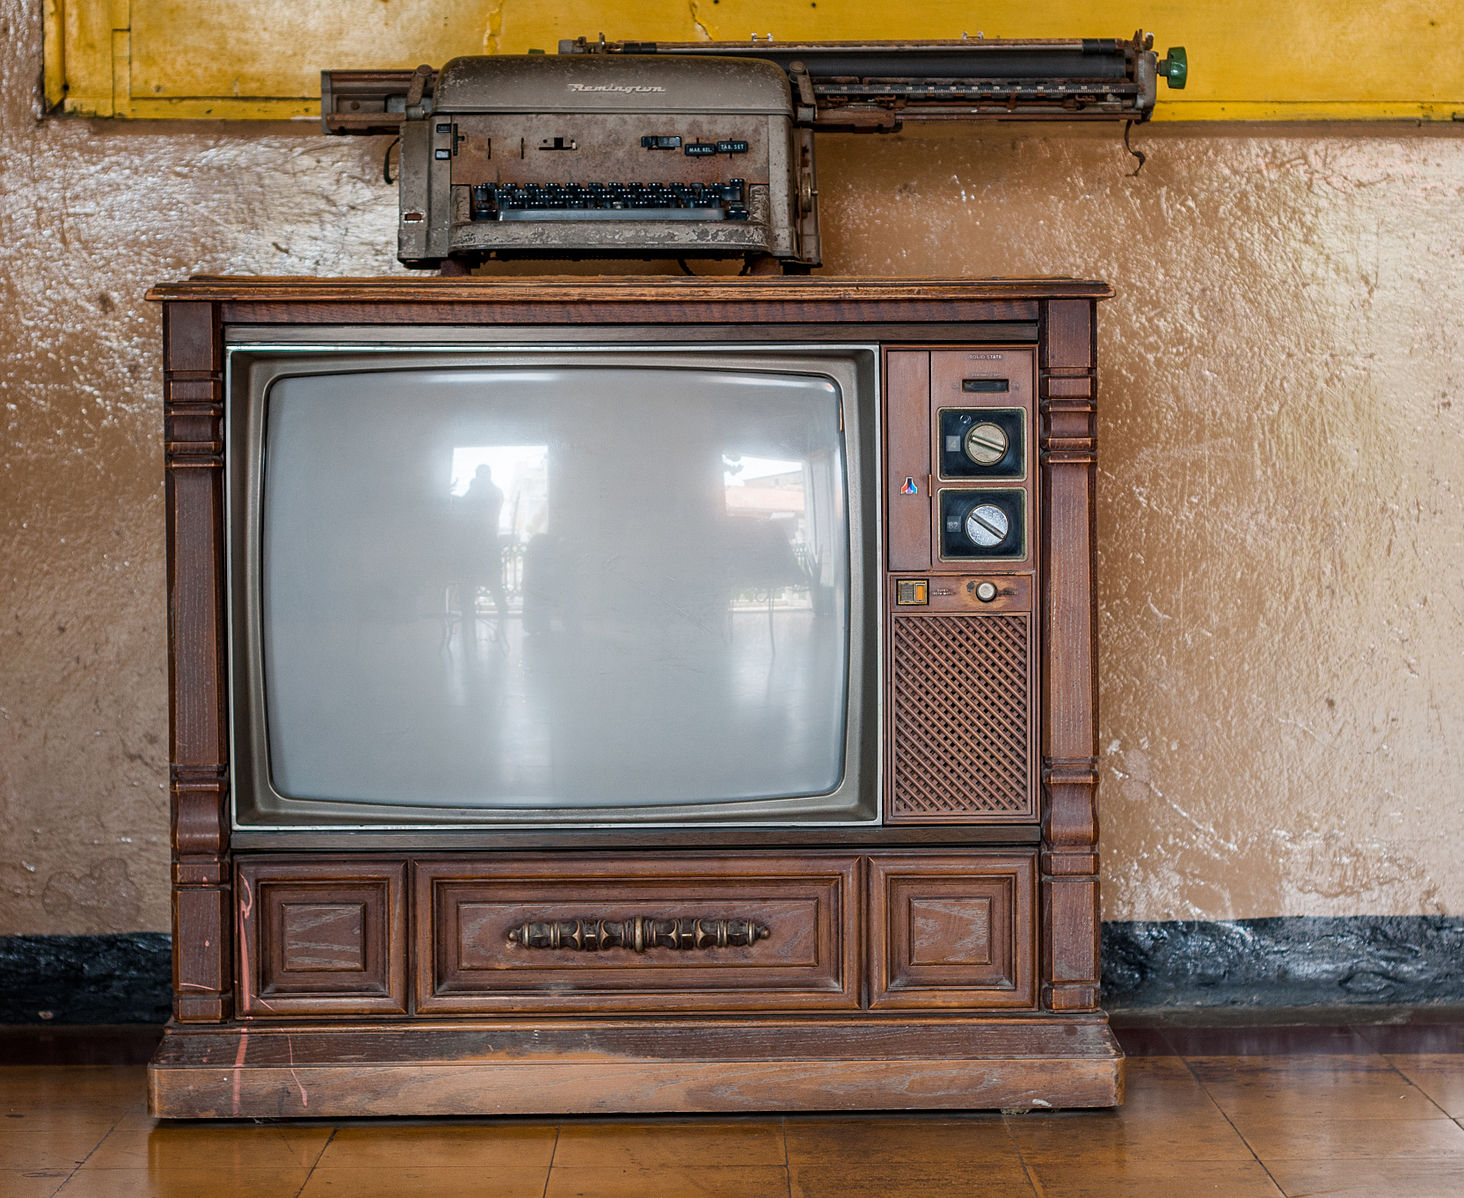 1464px-Old_TV